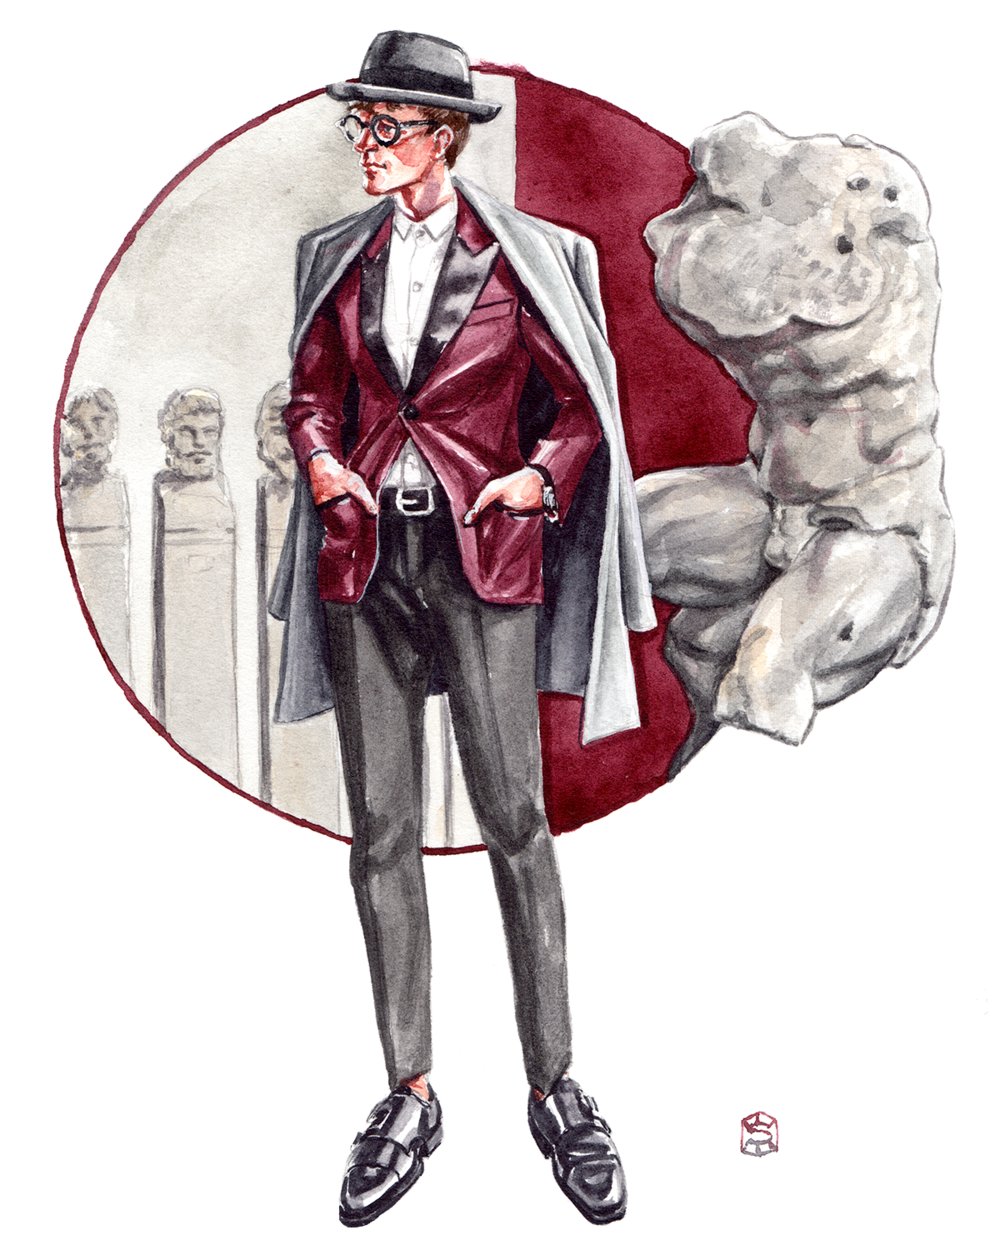 Menswear Illustration of a man wearing a fashionable outfit from Espress Men, standing near the Belvedere Torso, a sculpture in the Vatican Museum